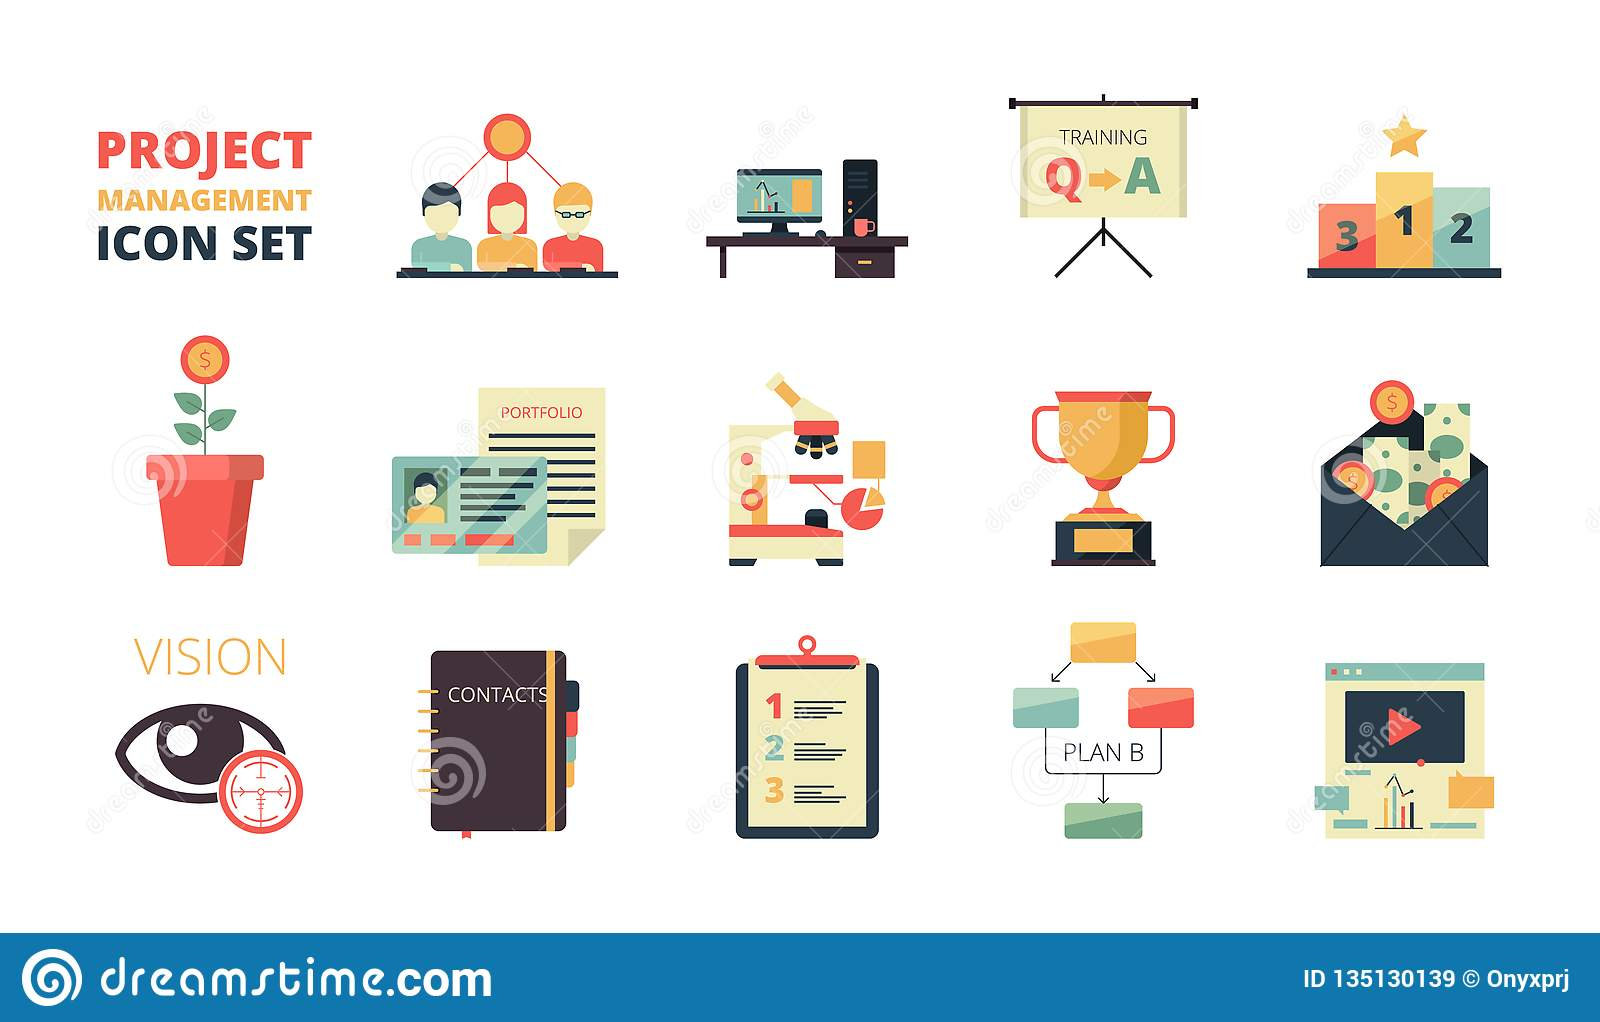 Project Planning Icon Business Strategy Management Processes Map Plan Development Dashboard Crm System Infographic Stock Vector Illustration Of Line Idea 135130139